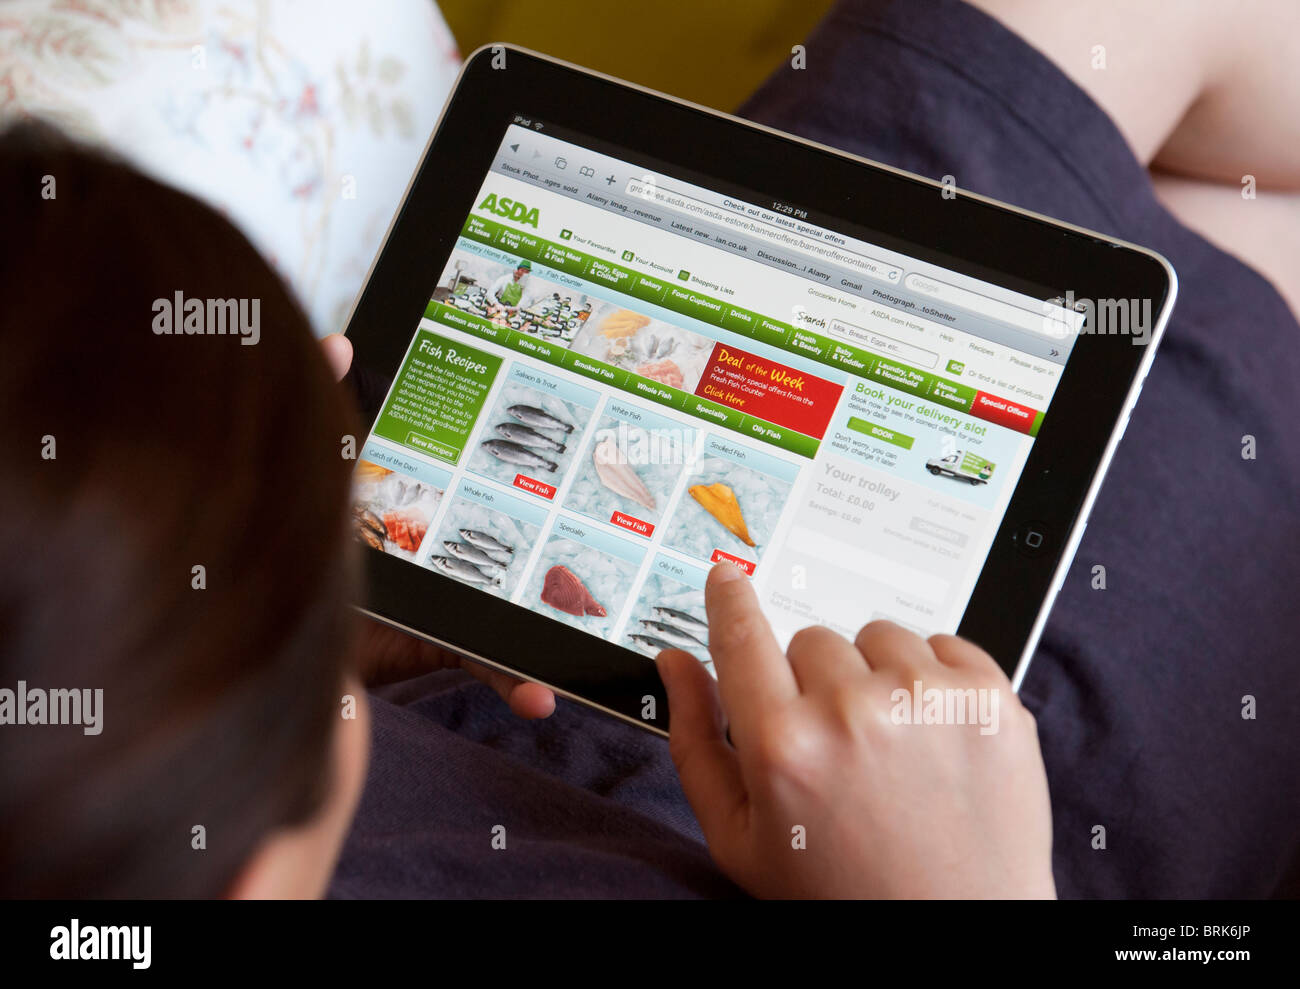 woman shopping at home online over wifi at asda shop on an ipad stock photo royalty free image. Black Bedroom Furniture Sets. Home Design Ideas